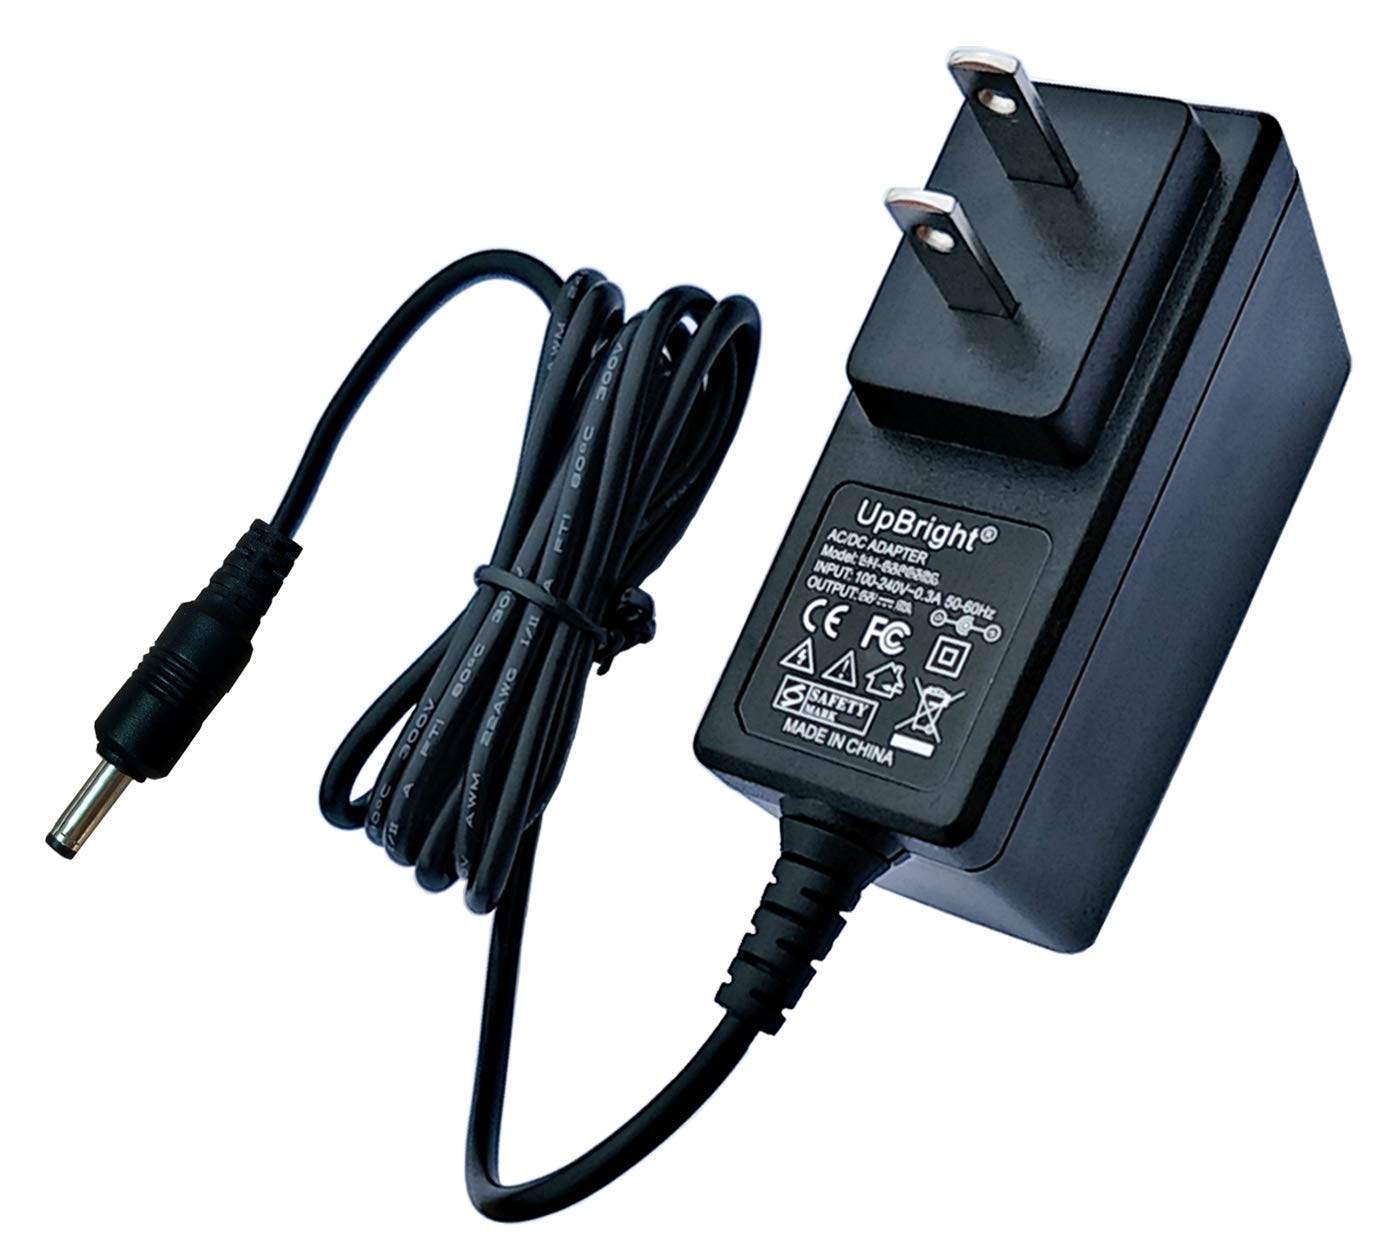 EU DC 10V 700mA 0.7A Power Adapter Charger For  Mindstorms EV3 NXT 45517 New